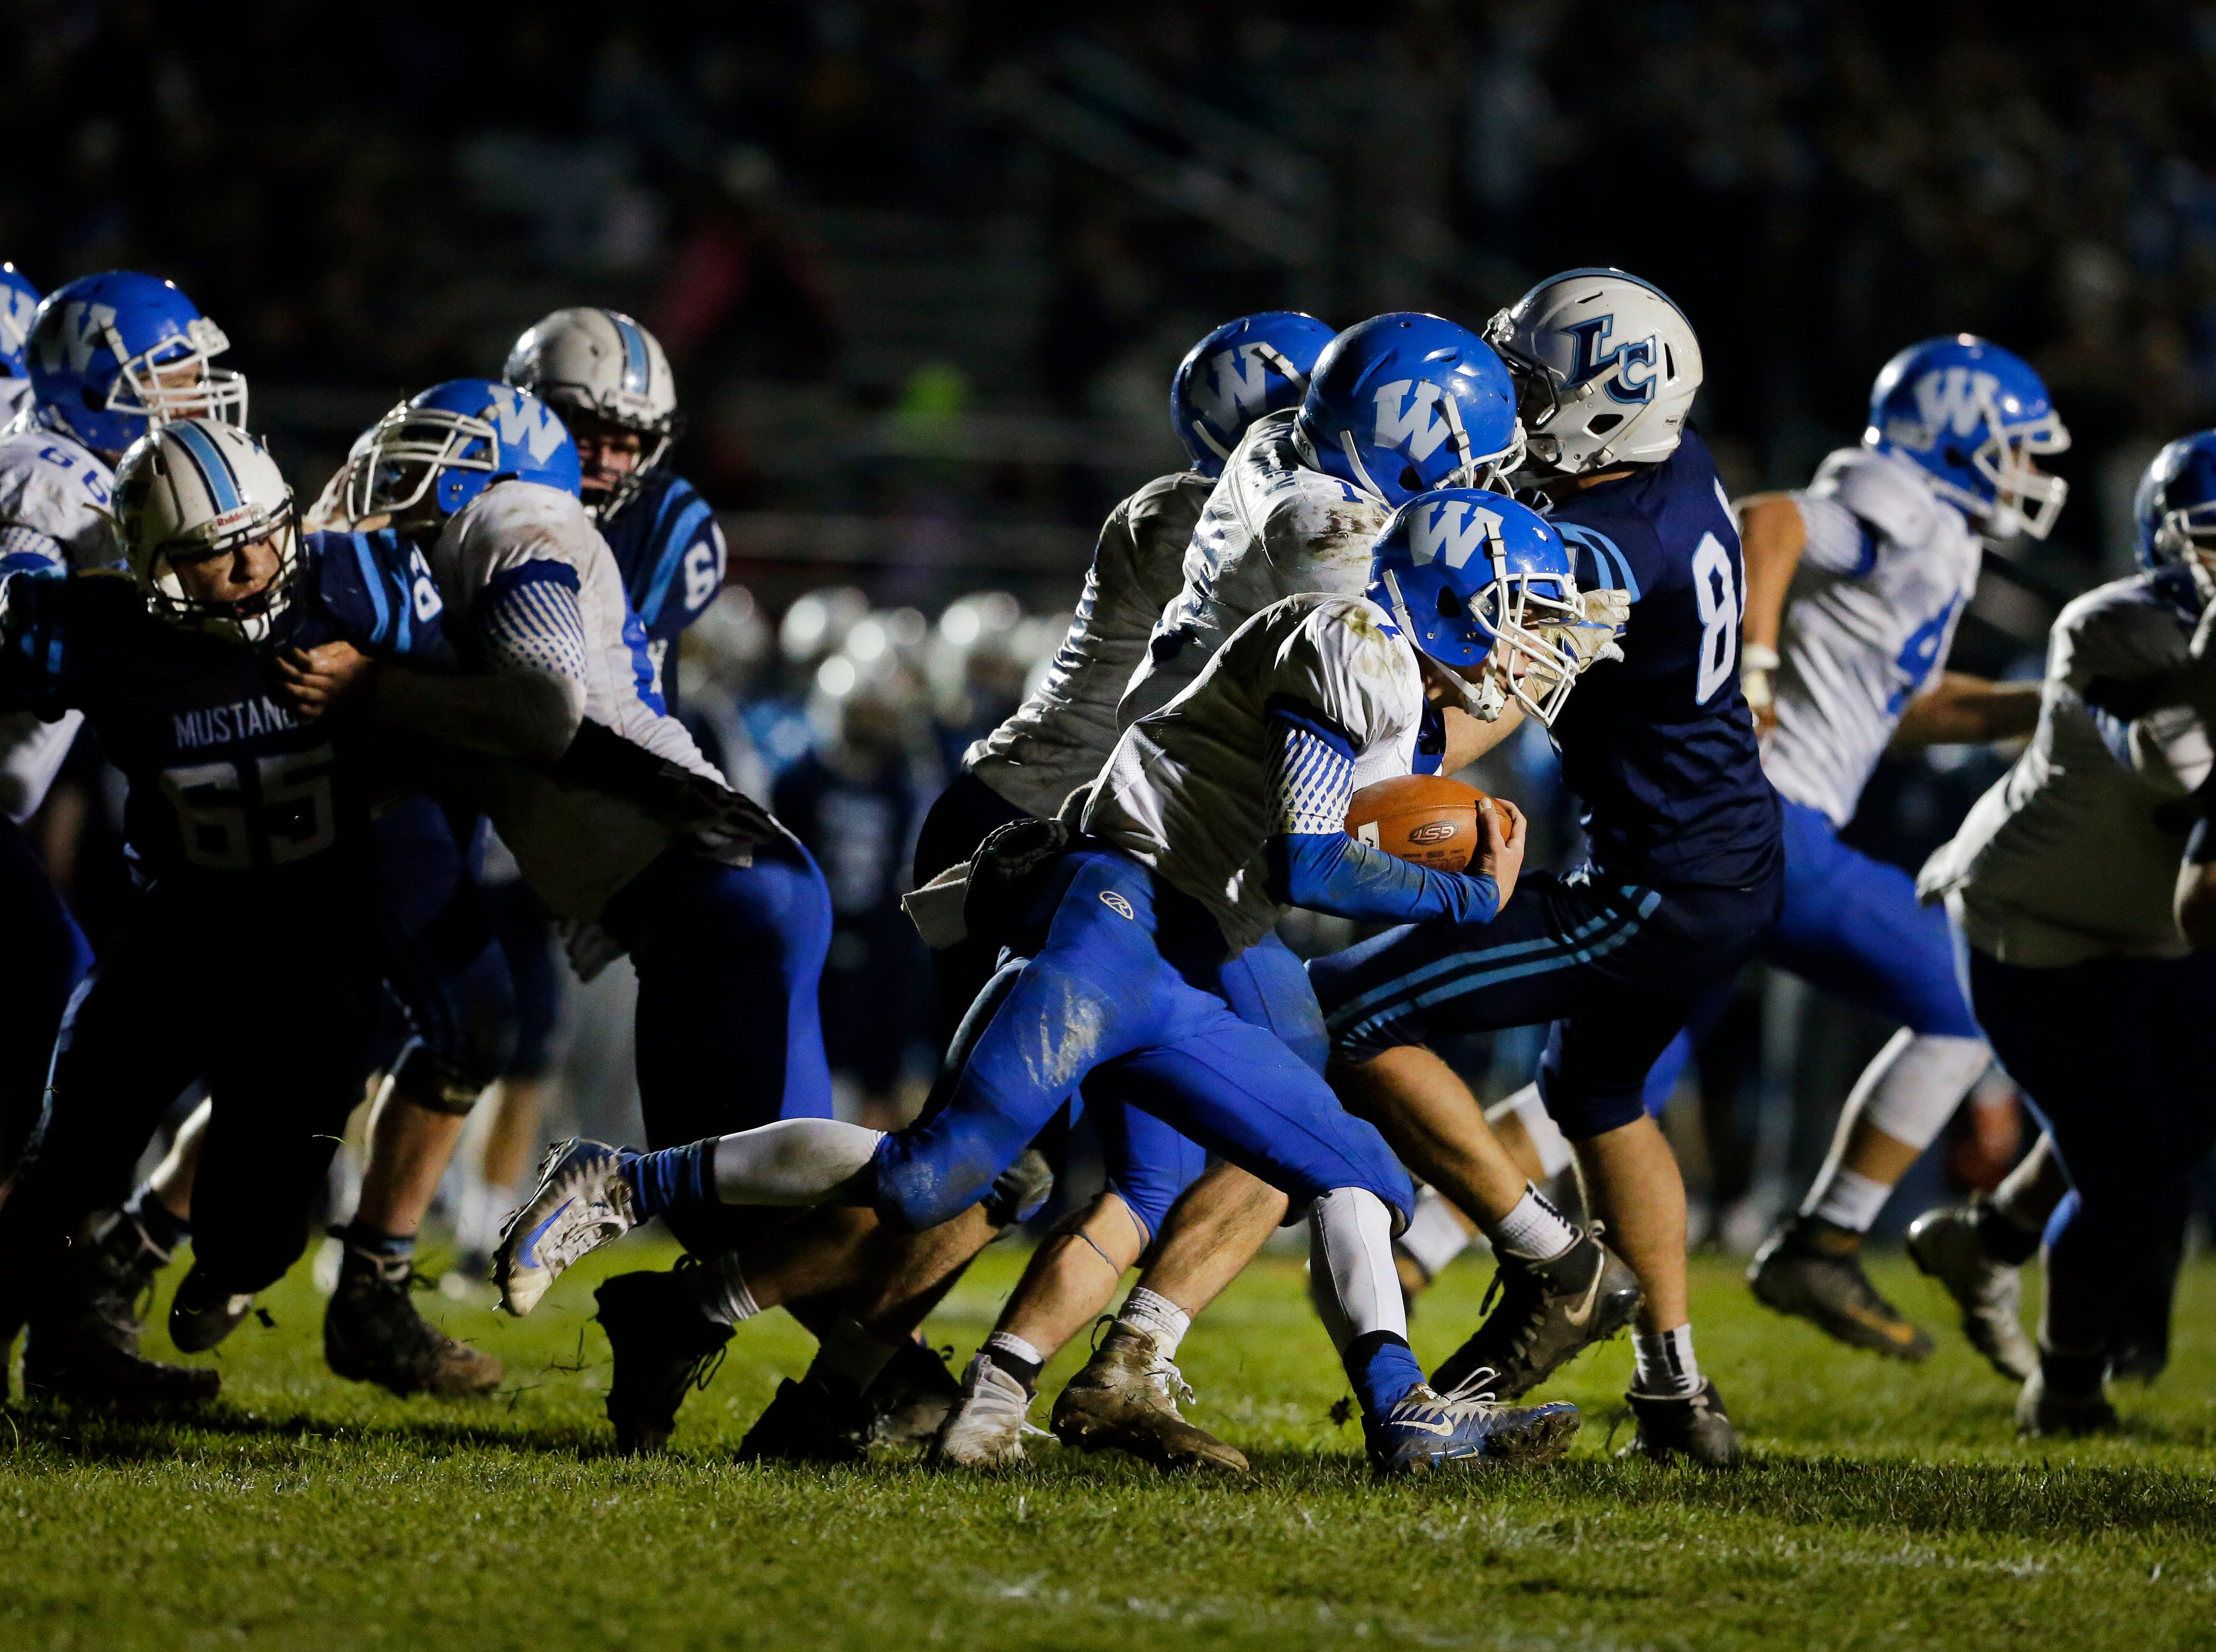 Quarterback Douglas Klister of Wrightstown carries the ball against Little Chute in a WIAA Division 4 Level 3 playoff game Friday, November 2, 2018, at Fitzpatrick Field in Little Chute, Wis.Ron Page/USA TODAY NETWORK-Wisconsin